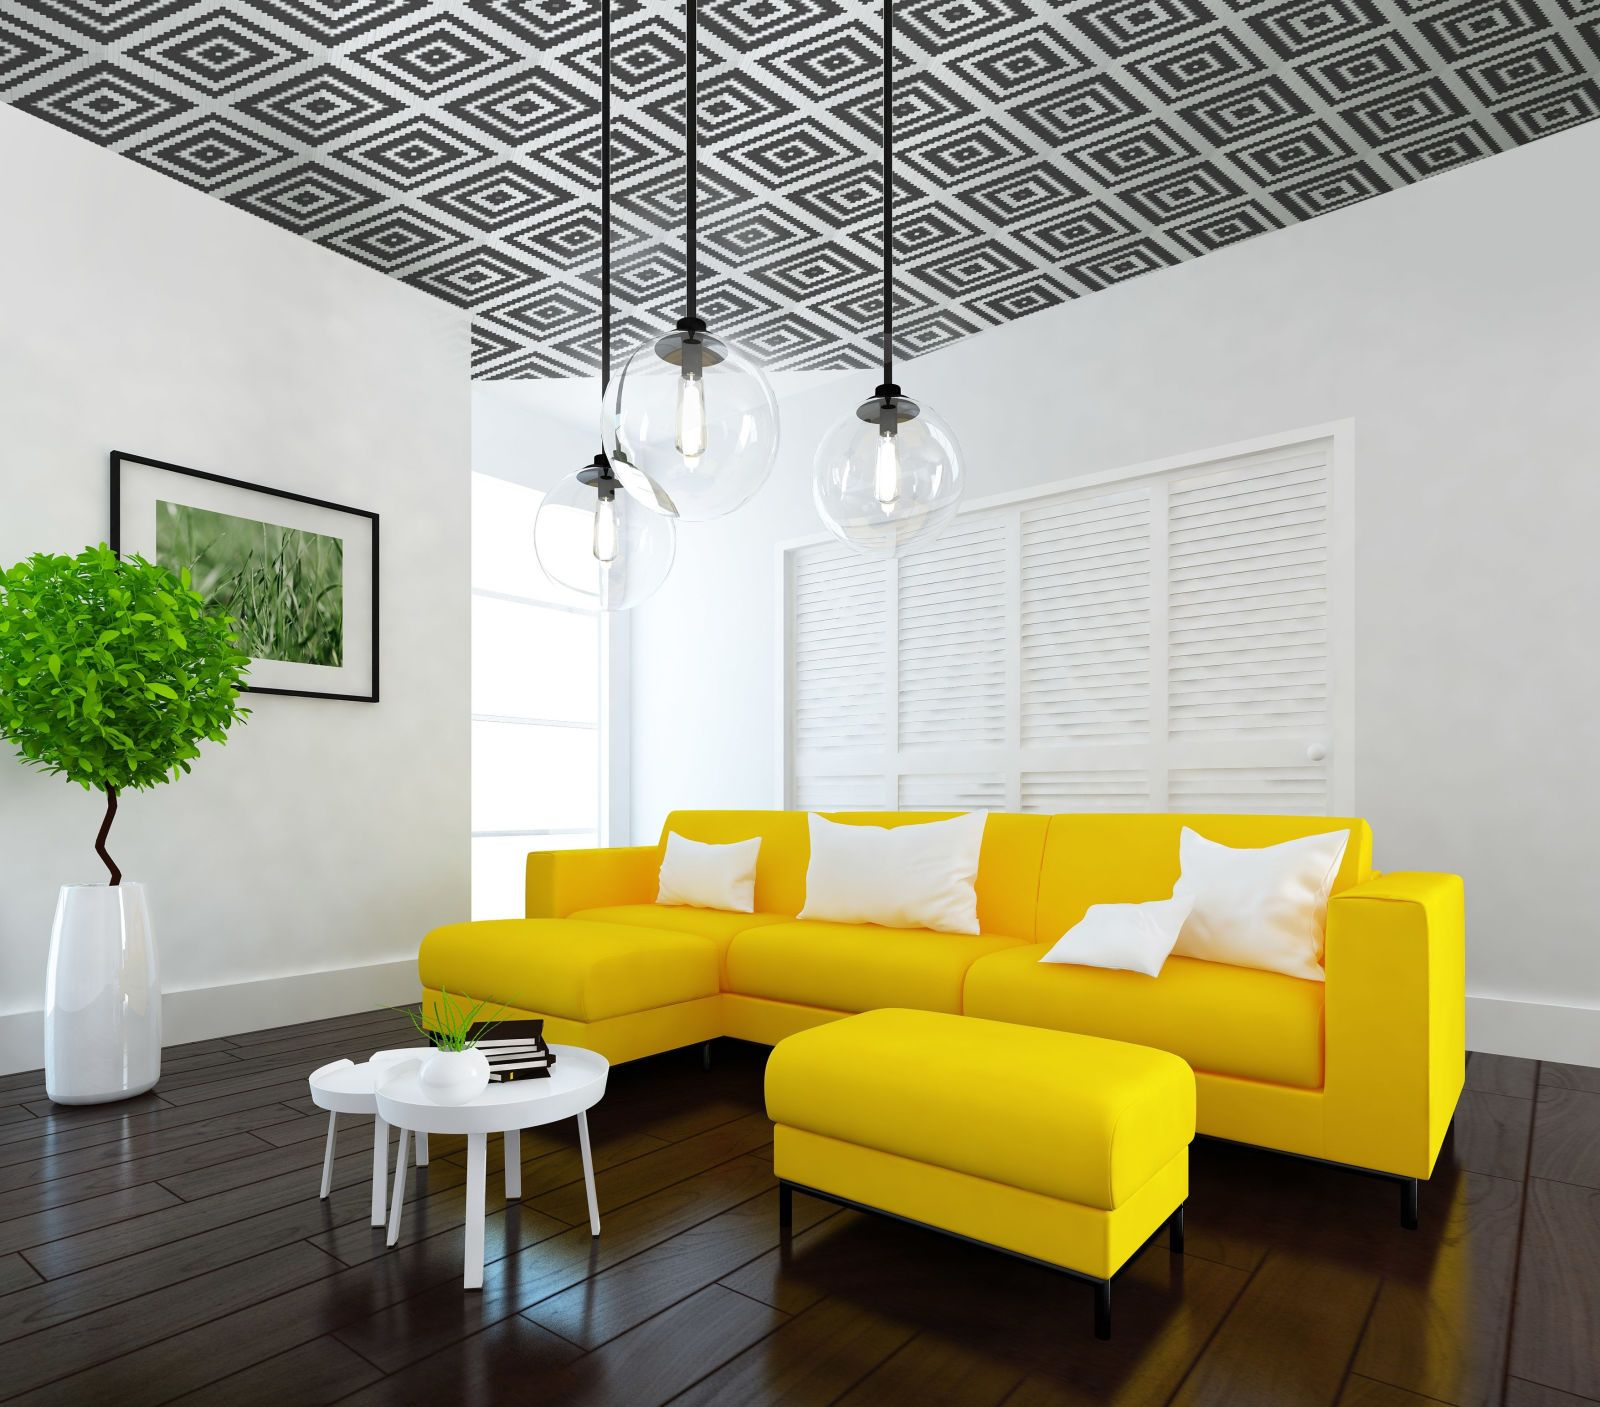 5 statement ceiling ideas using wallpaper | Ceilings, Wallpaper and ...